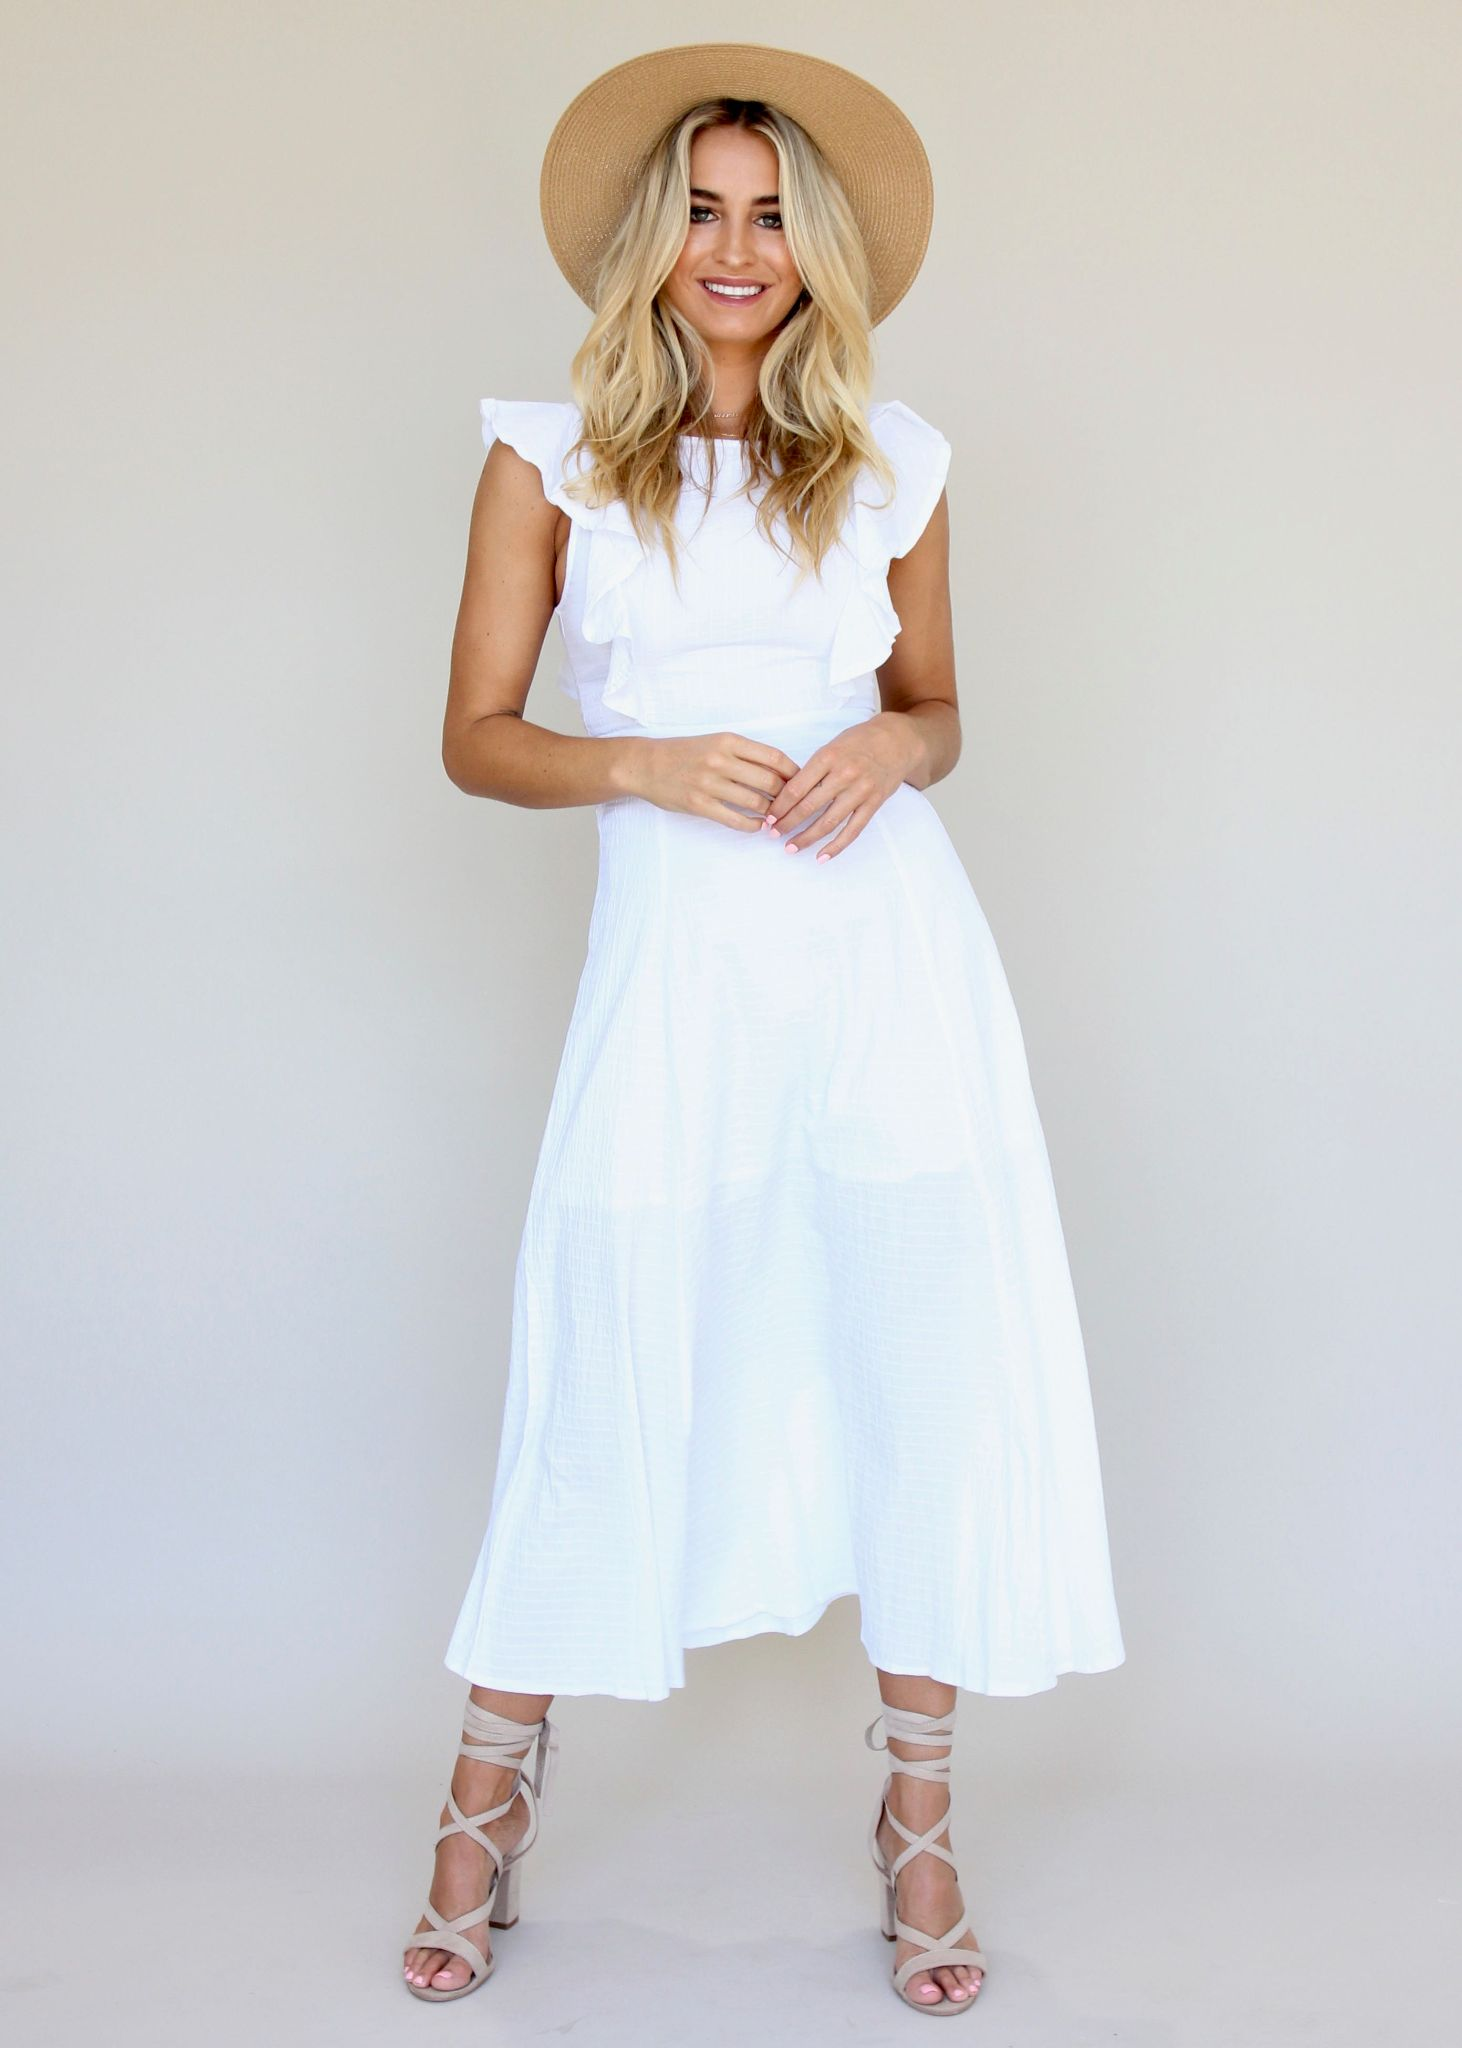 Body Of Work Dress - White